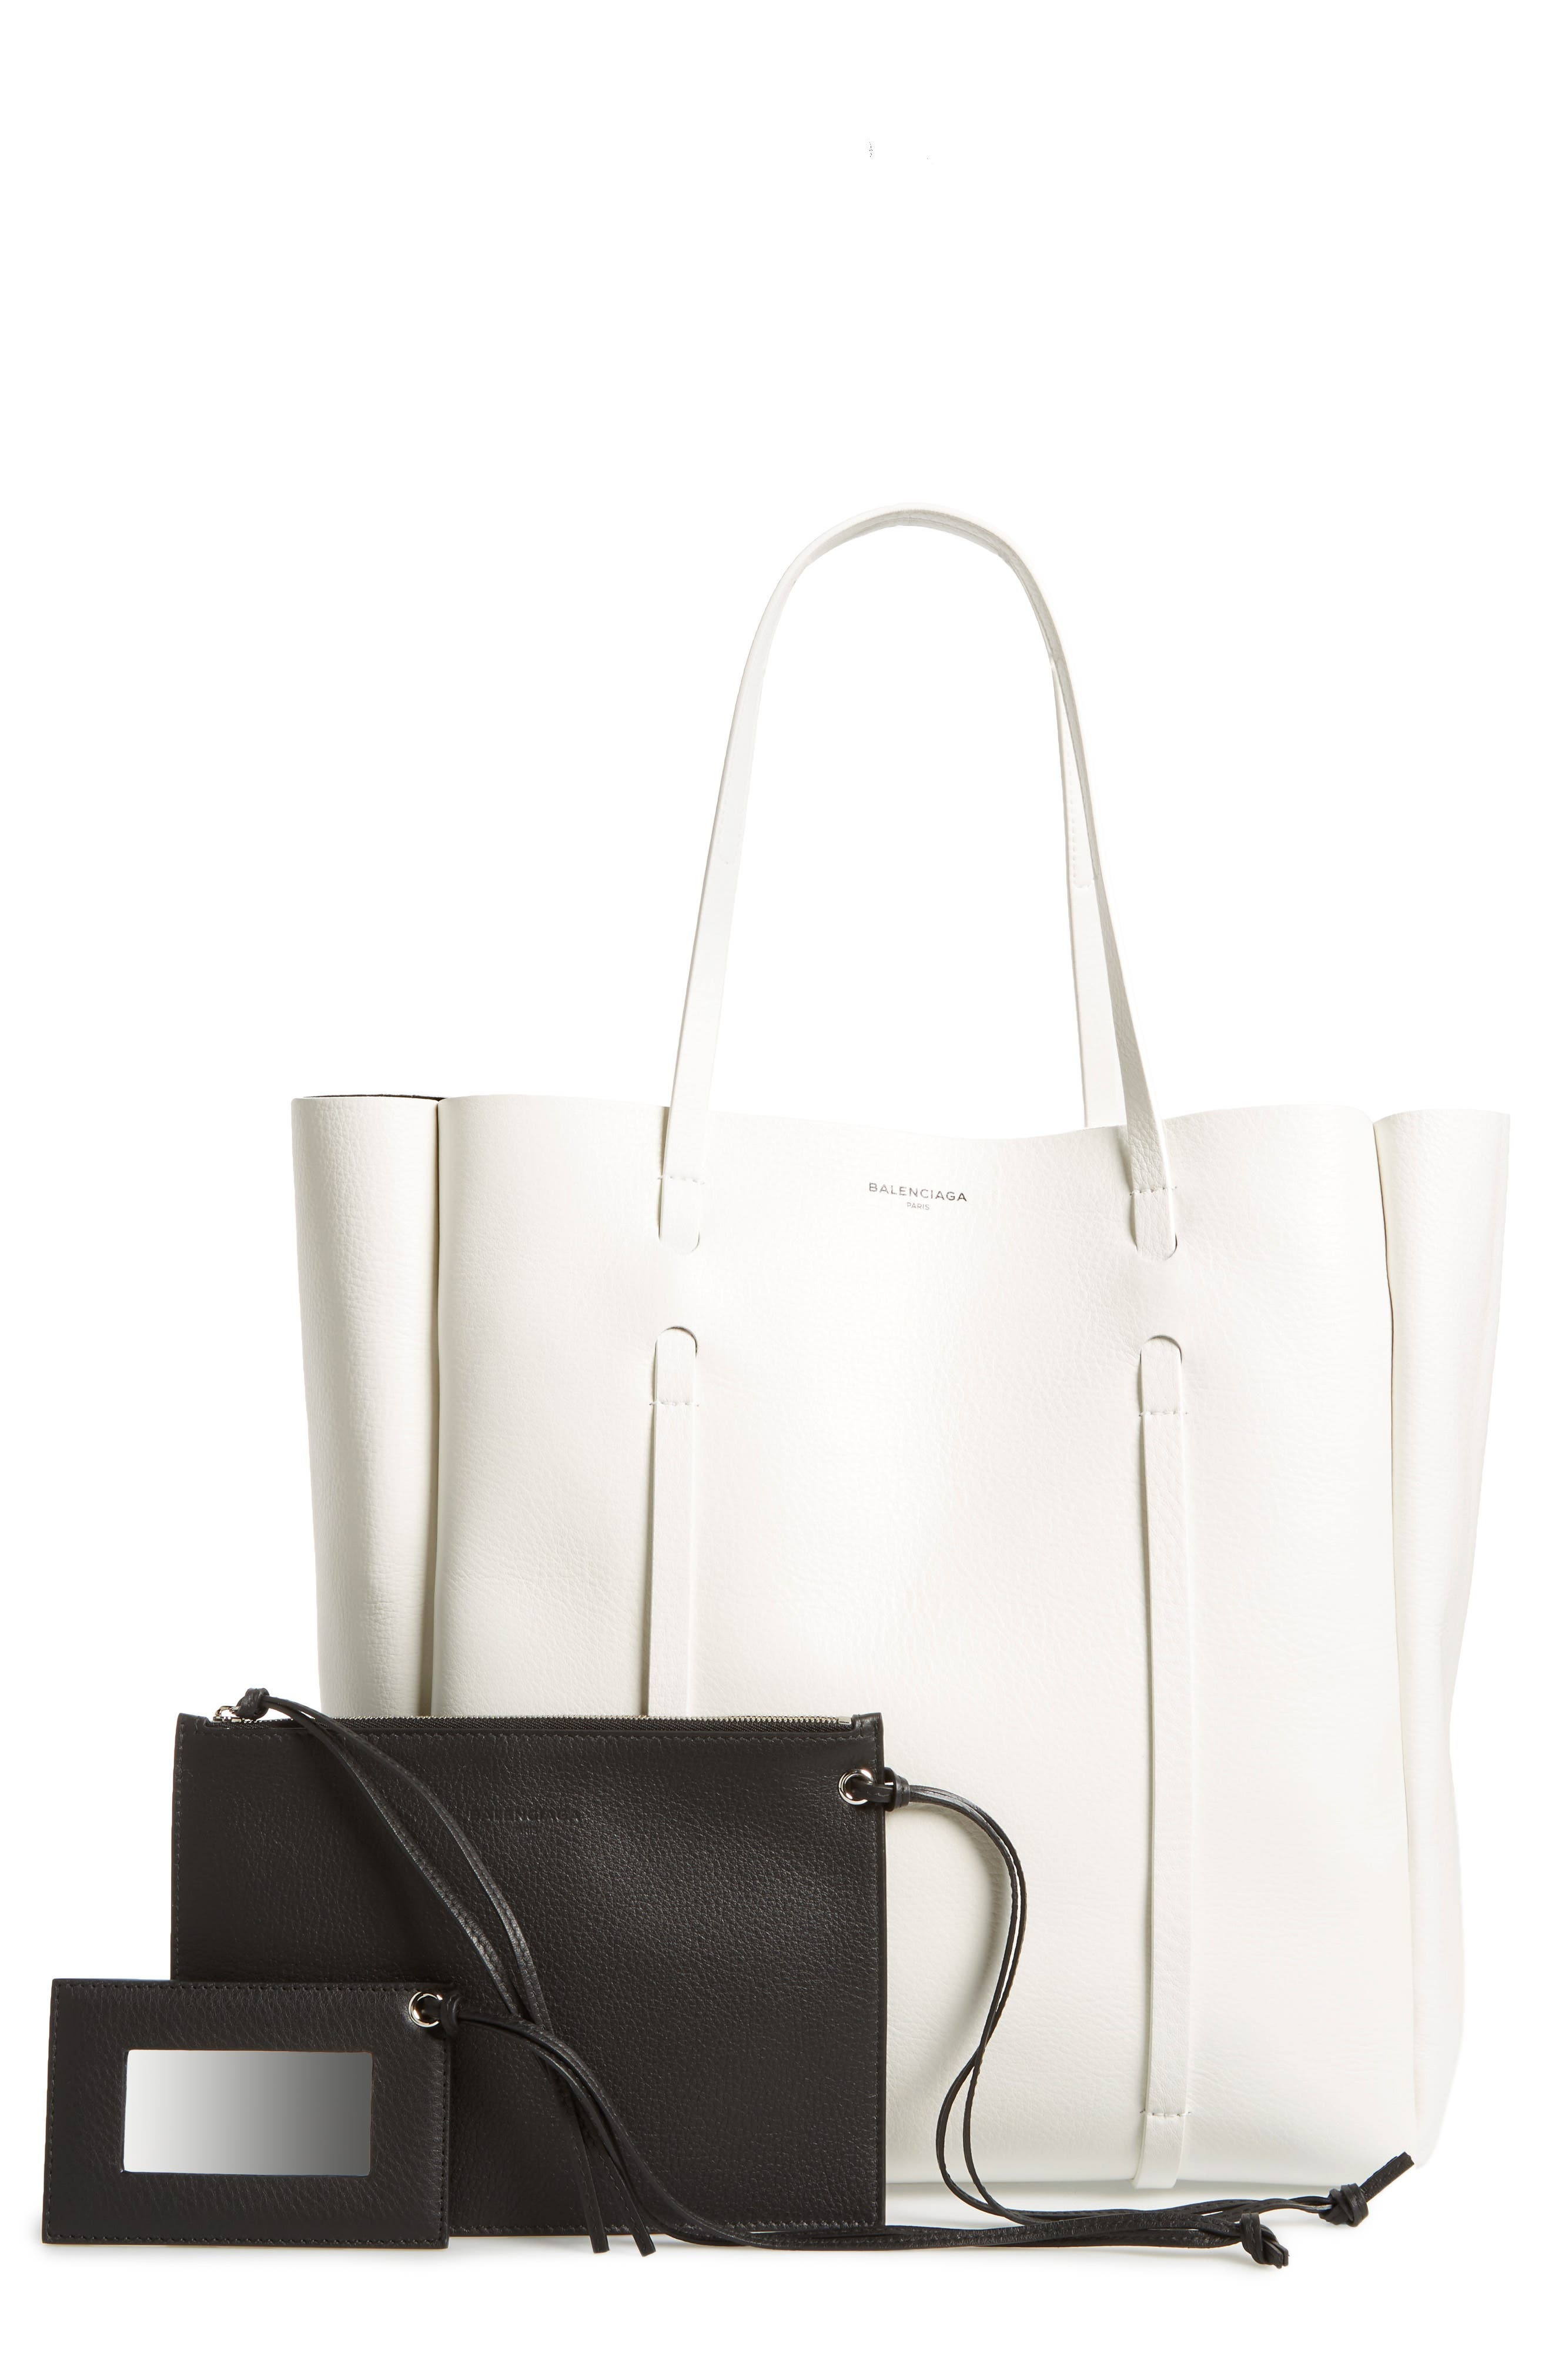 Medium Everyday Calfskin Tote,                         Main,                         color, BLANC OPTIQUE/ NOIC